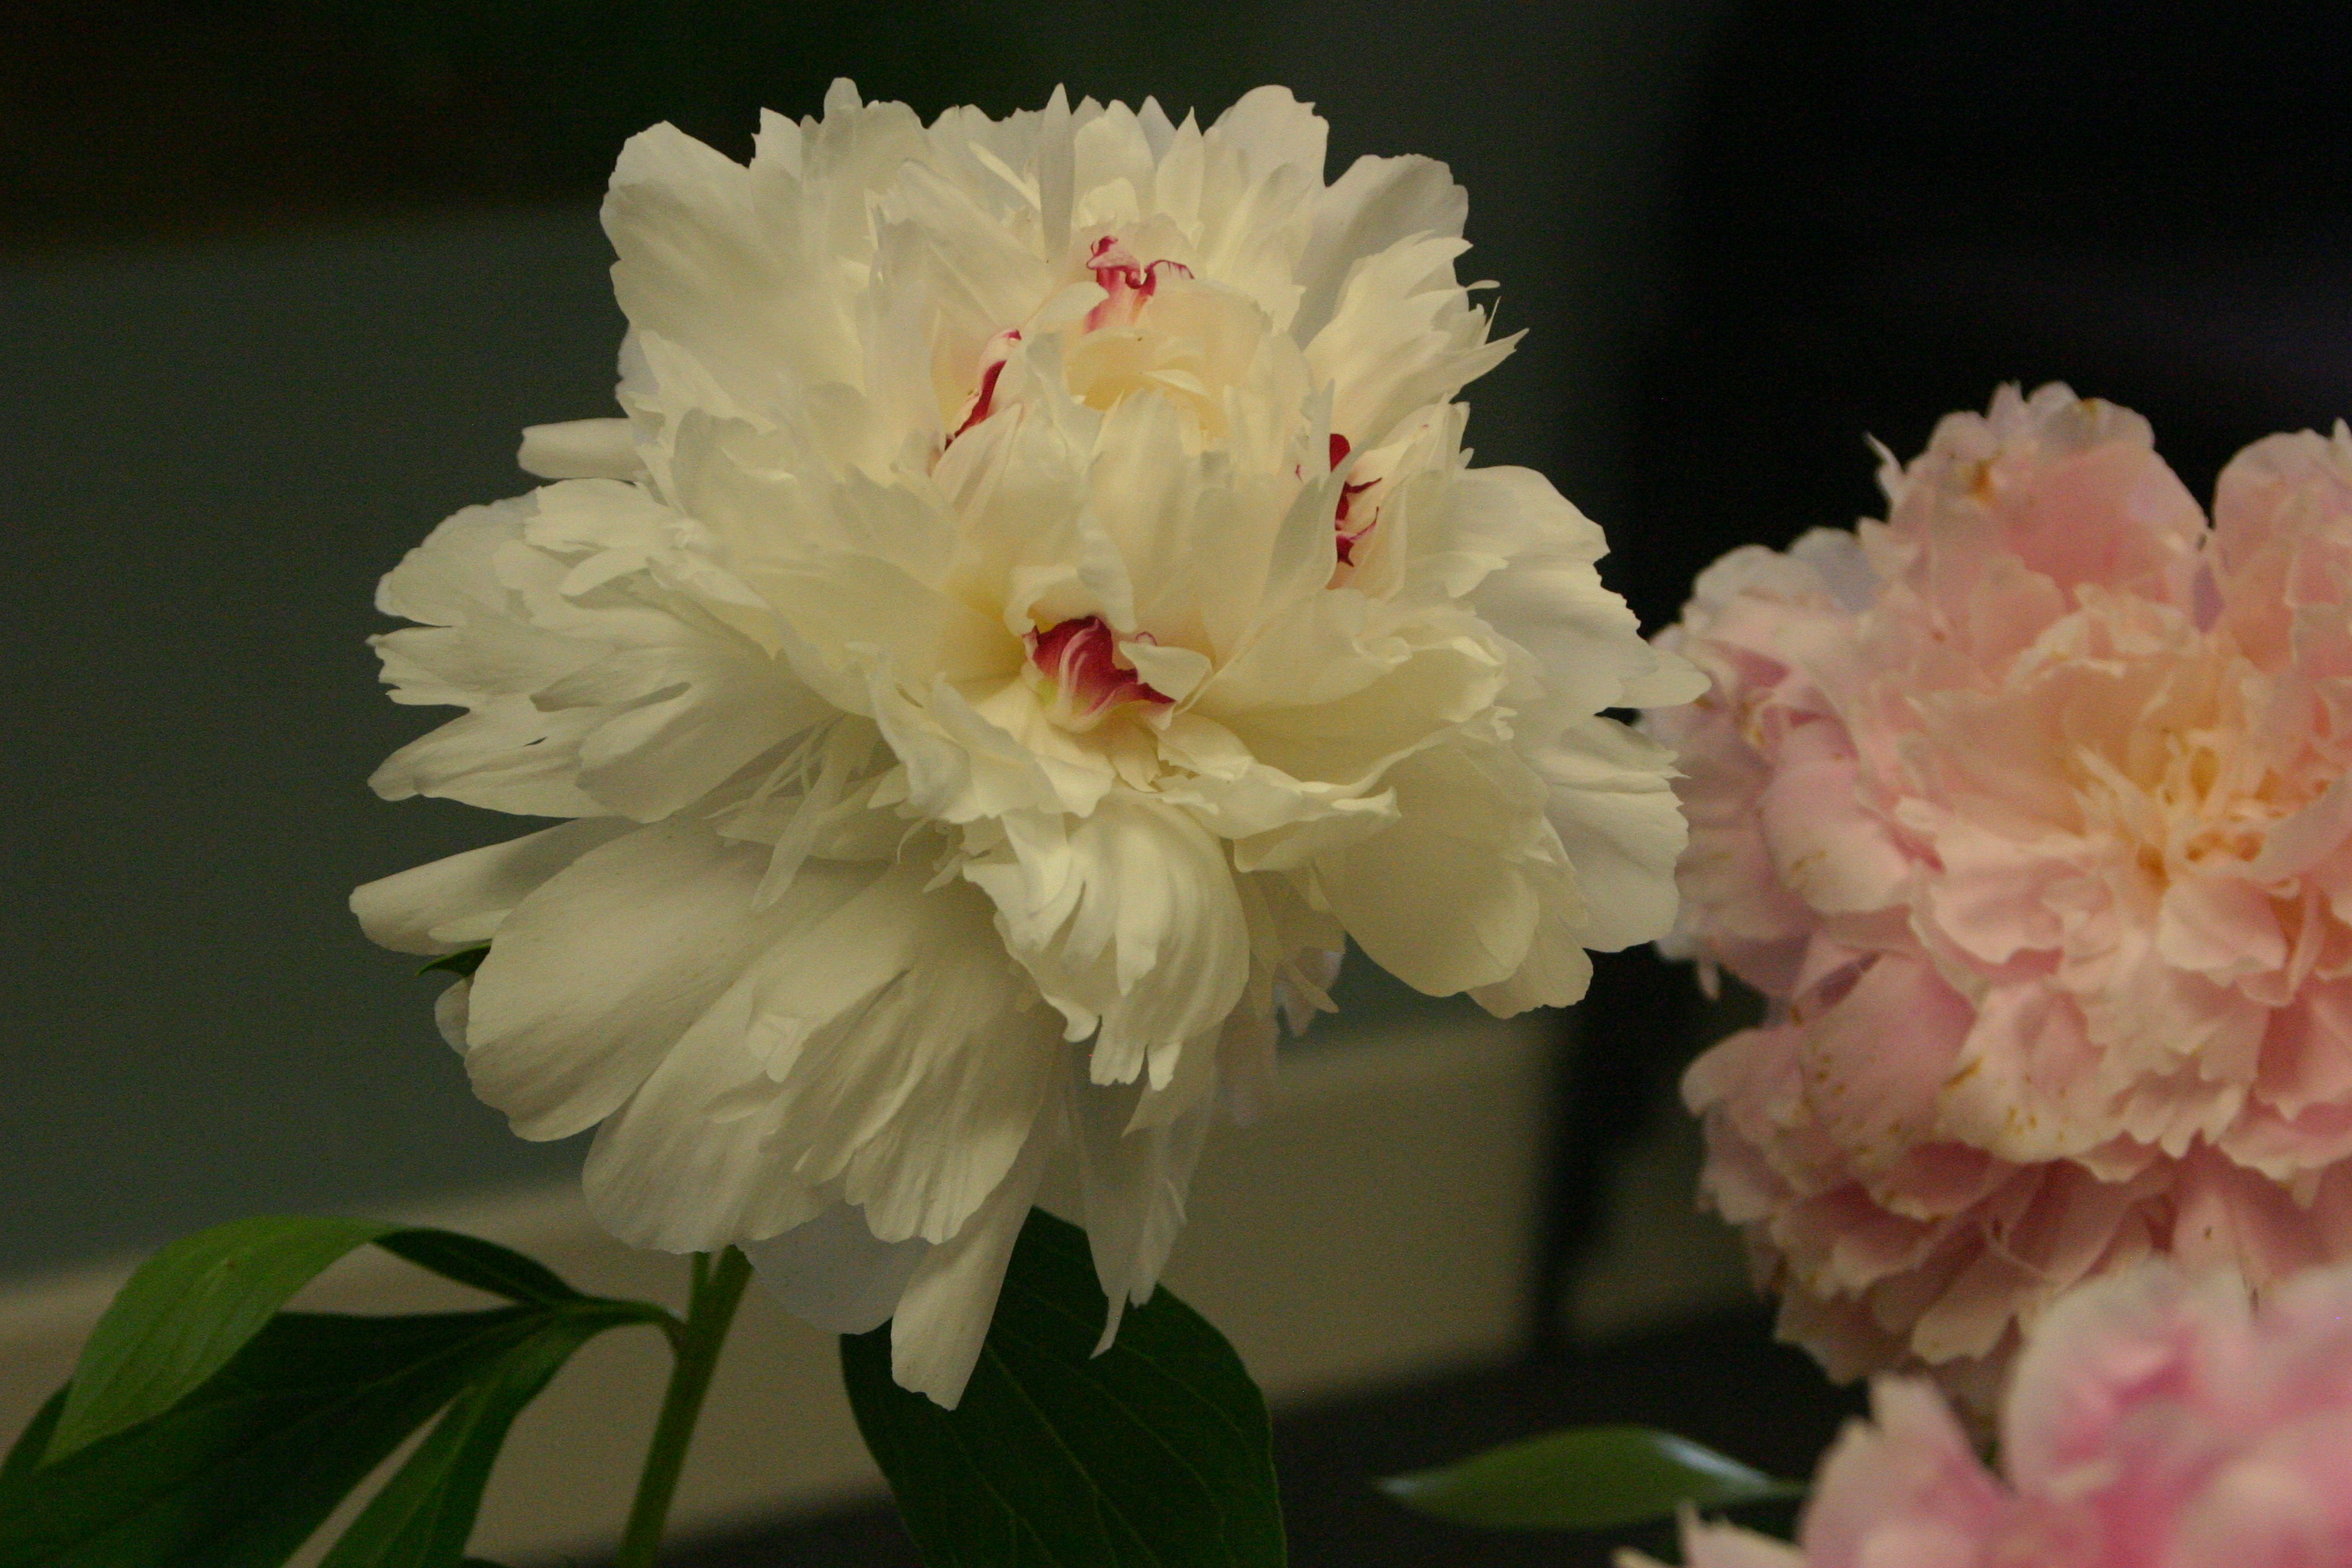 Town country garden club celebrating golden anniversary with deb osbornes large white peony with hints of red and pink at its center earned the sandy hook resident a blue ribbon and an award of merit in izmirmasajfo